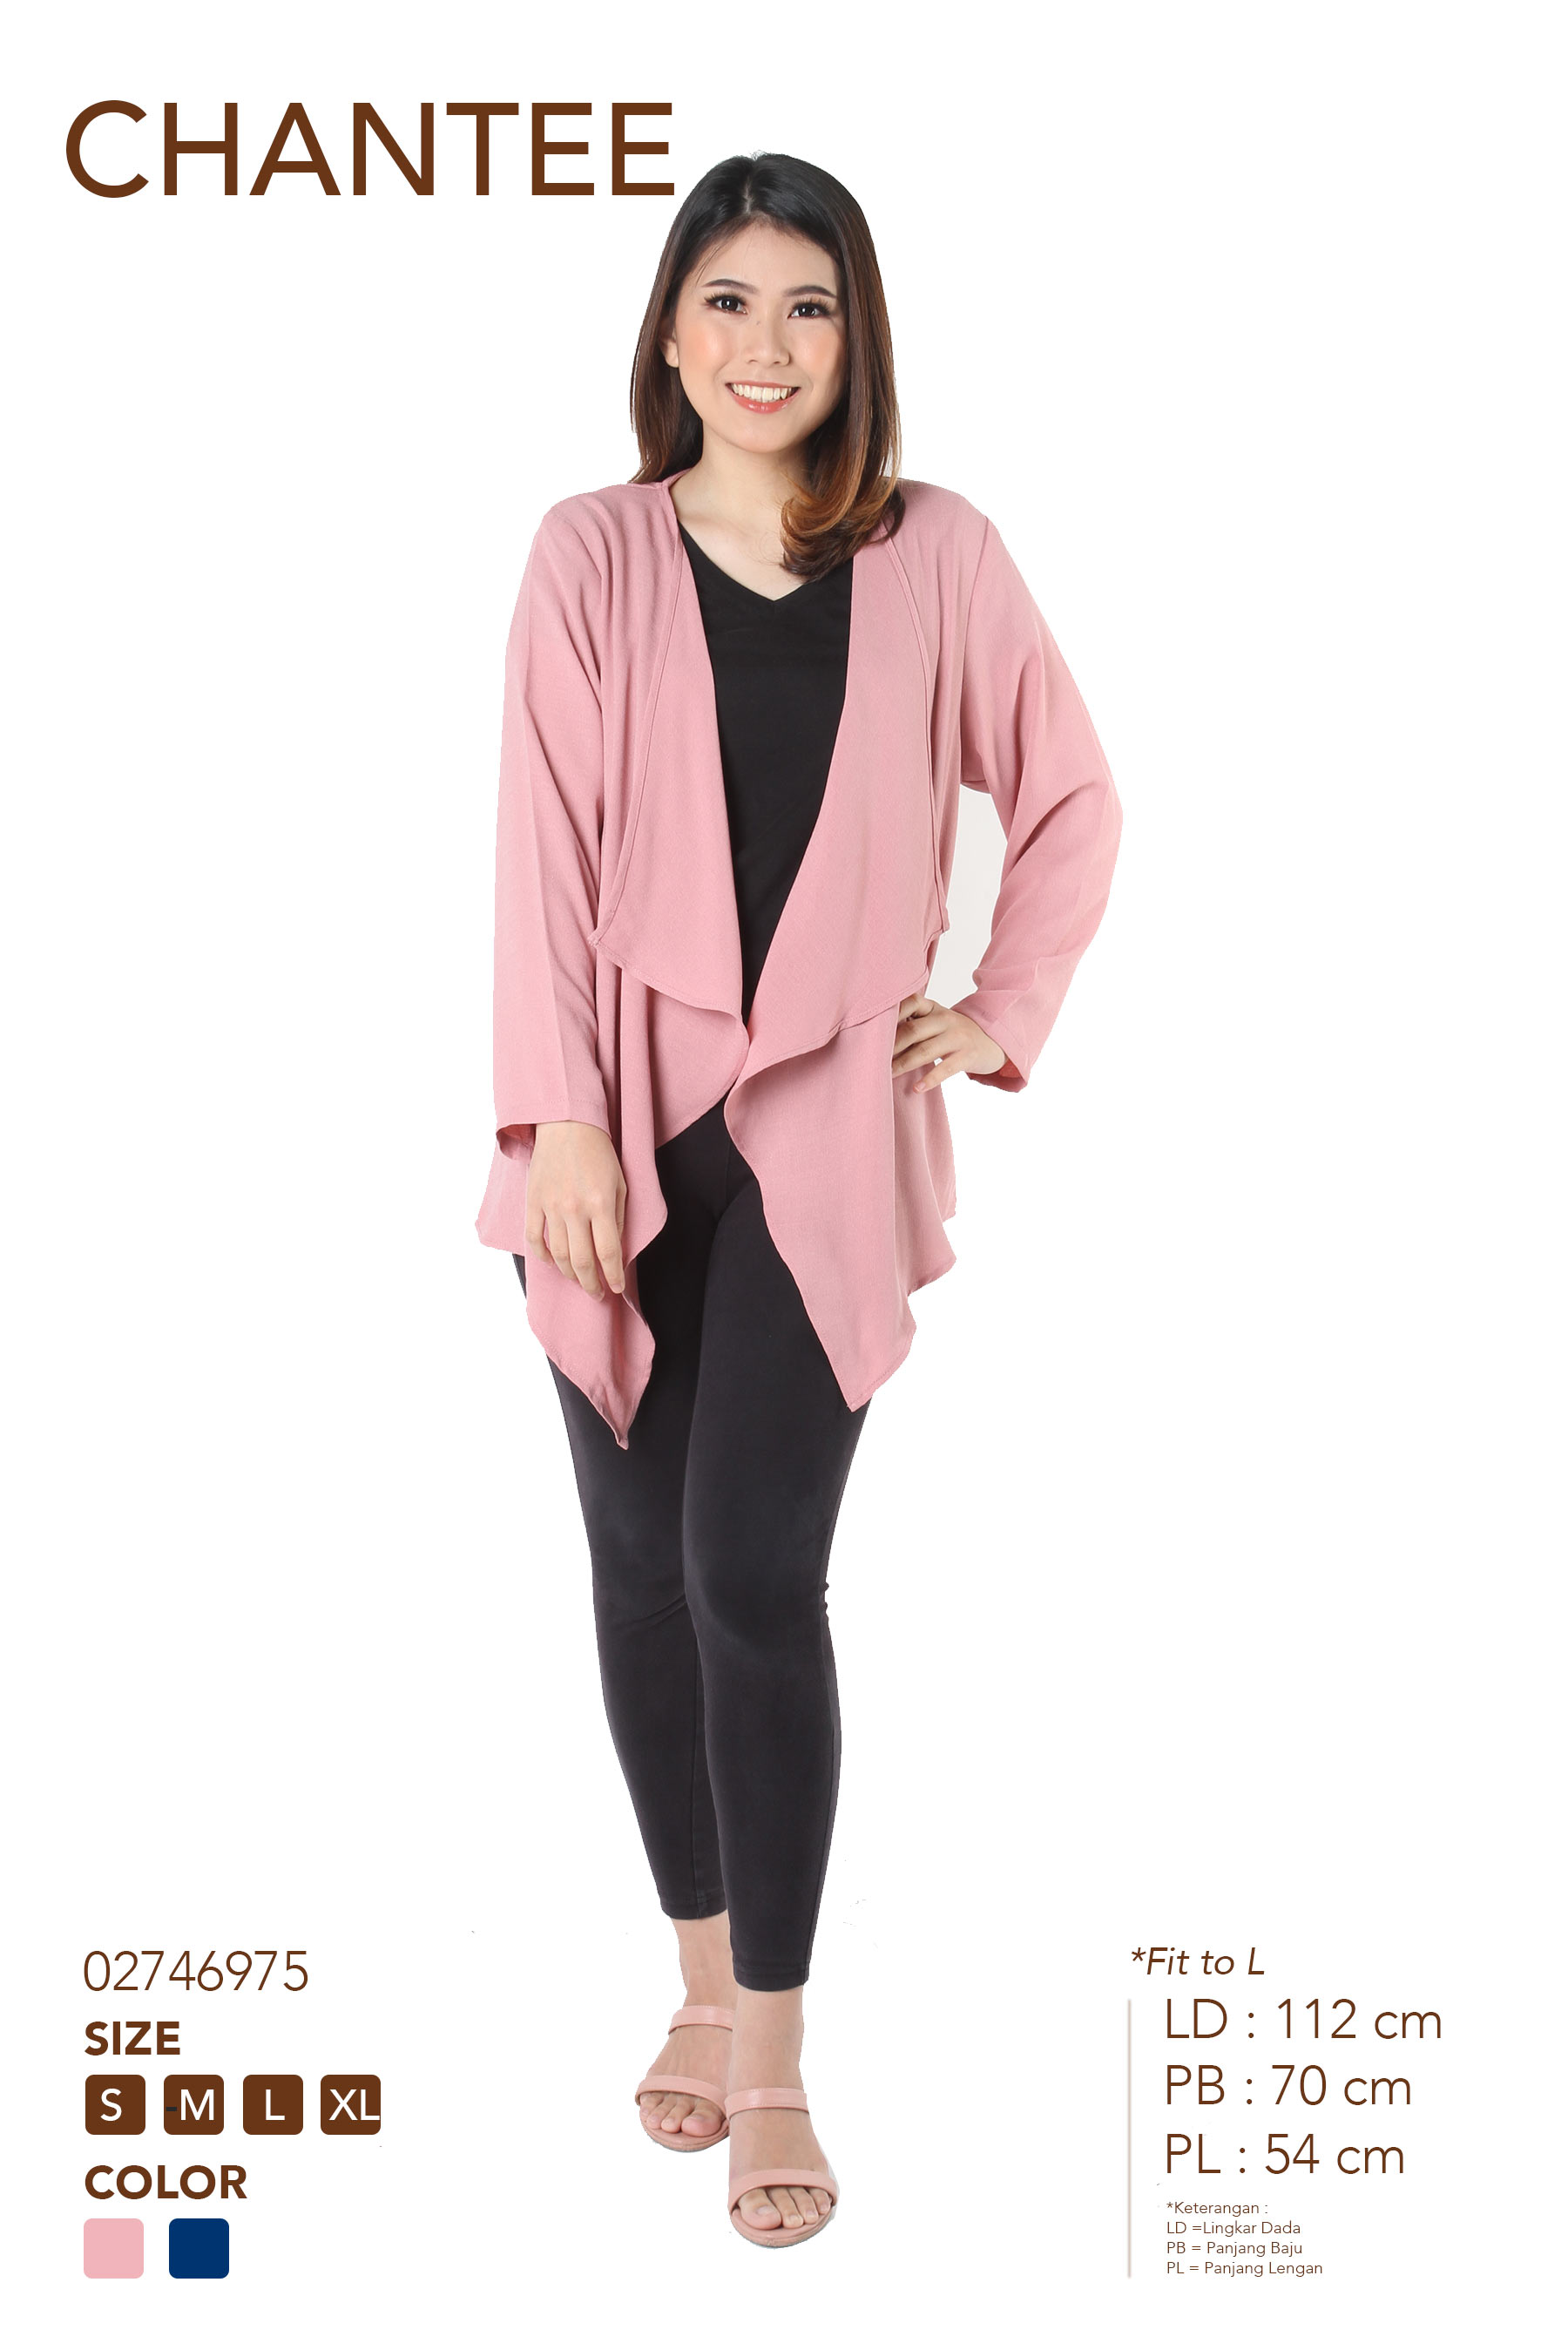 CHANTEE JB007 OUTER LAYER